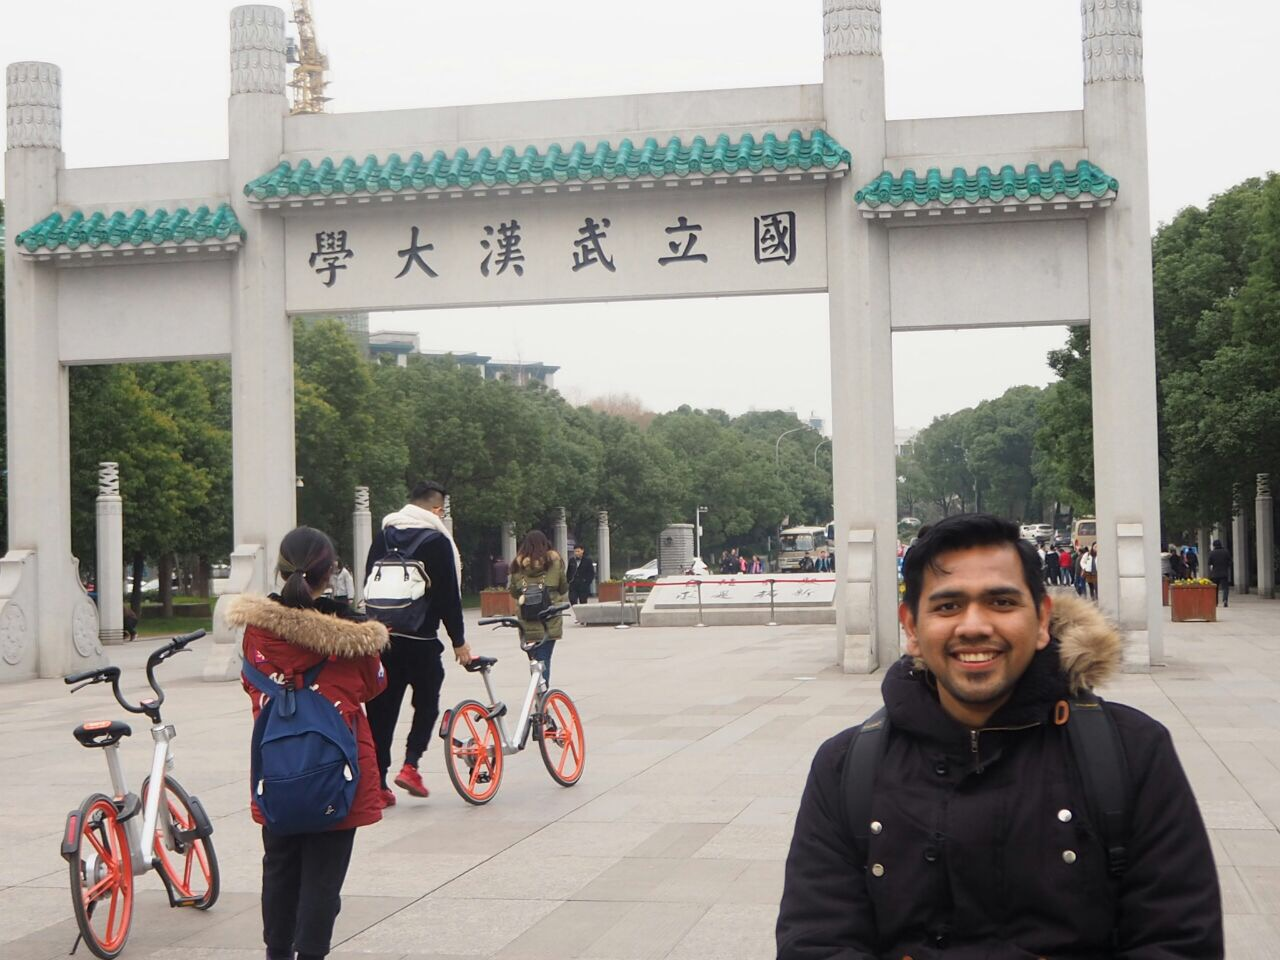 Imam Zarkachi – Master of Politics & International Relations at Central China Normal University, People Republic of China